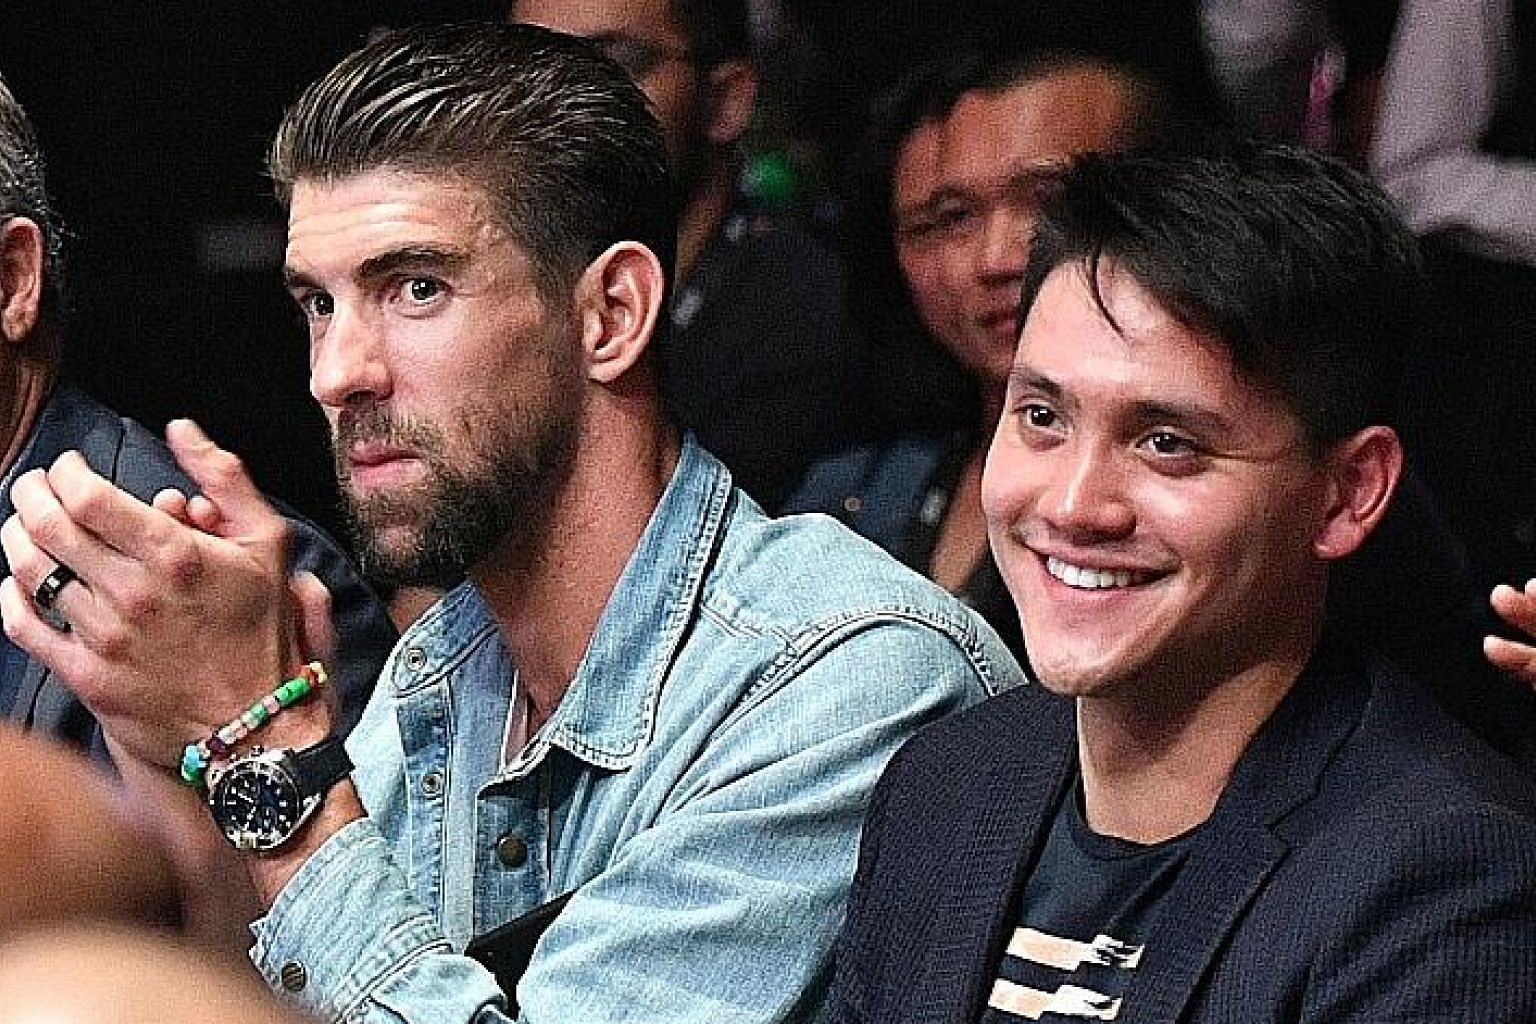 Michael Phelps seated next to Joseph Schooling watching One Championship's Enter the Dragon at the Singapore Indoor Stadium yesterday.